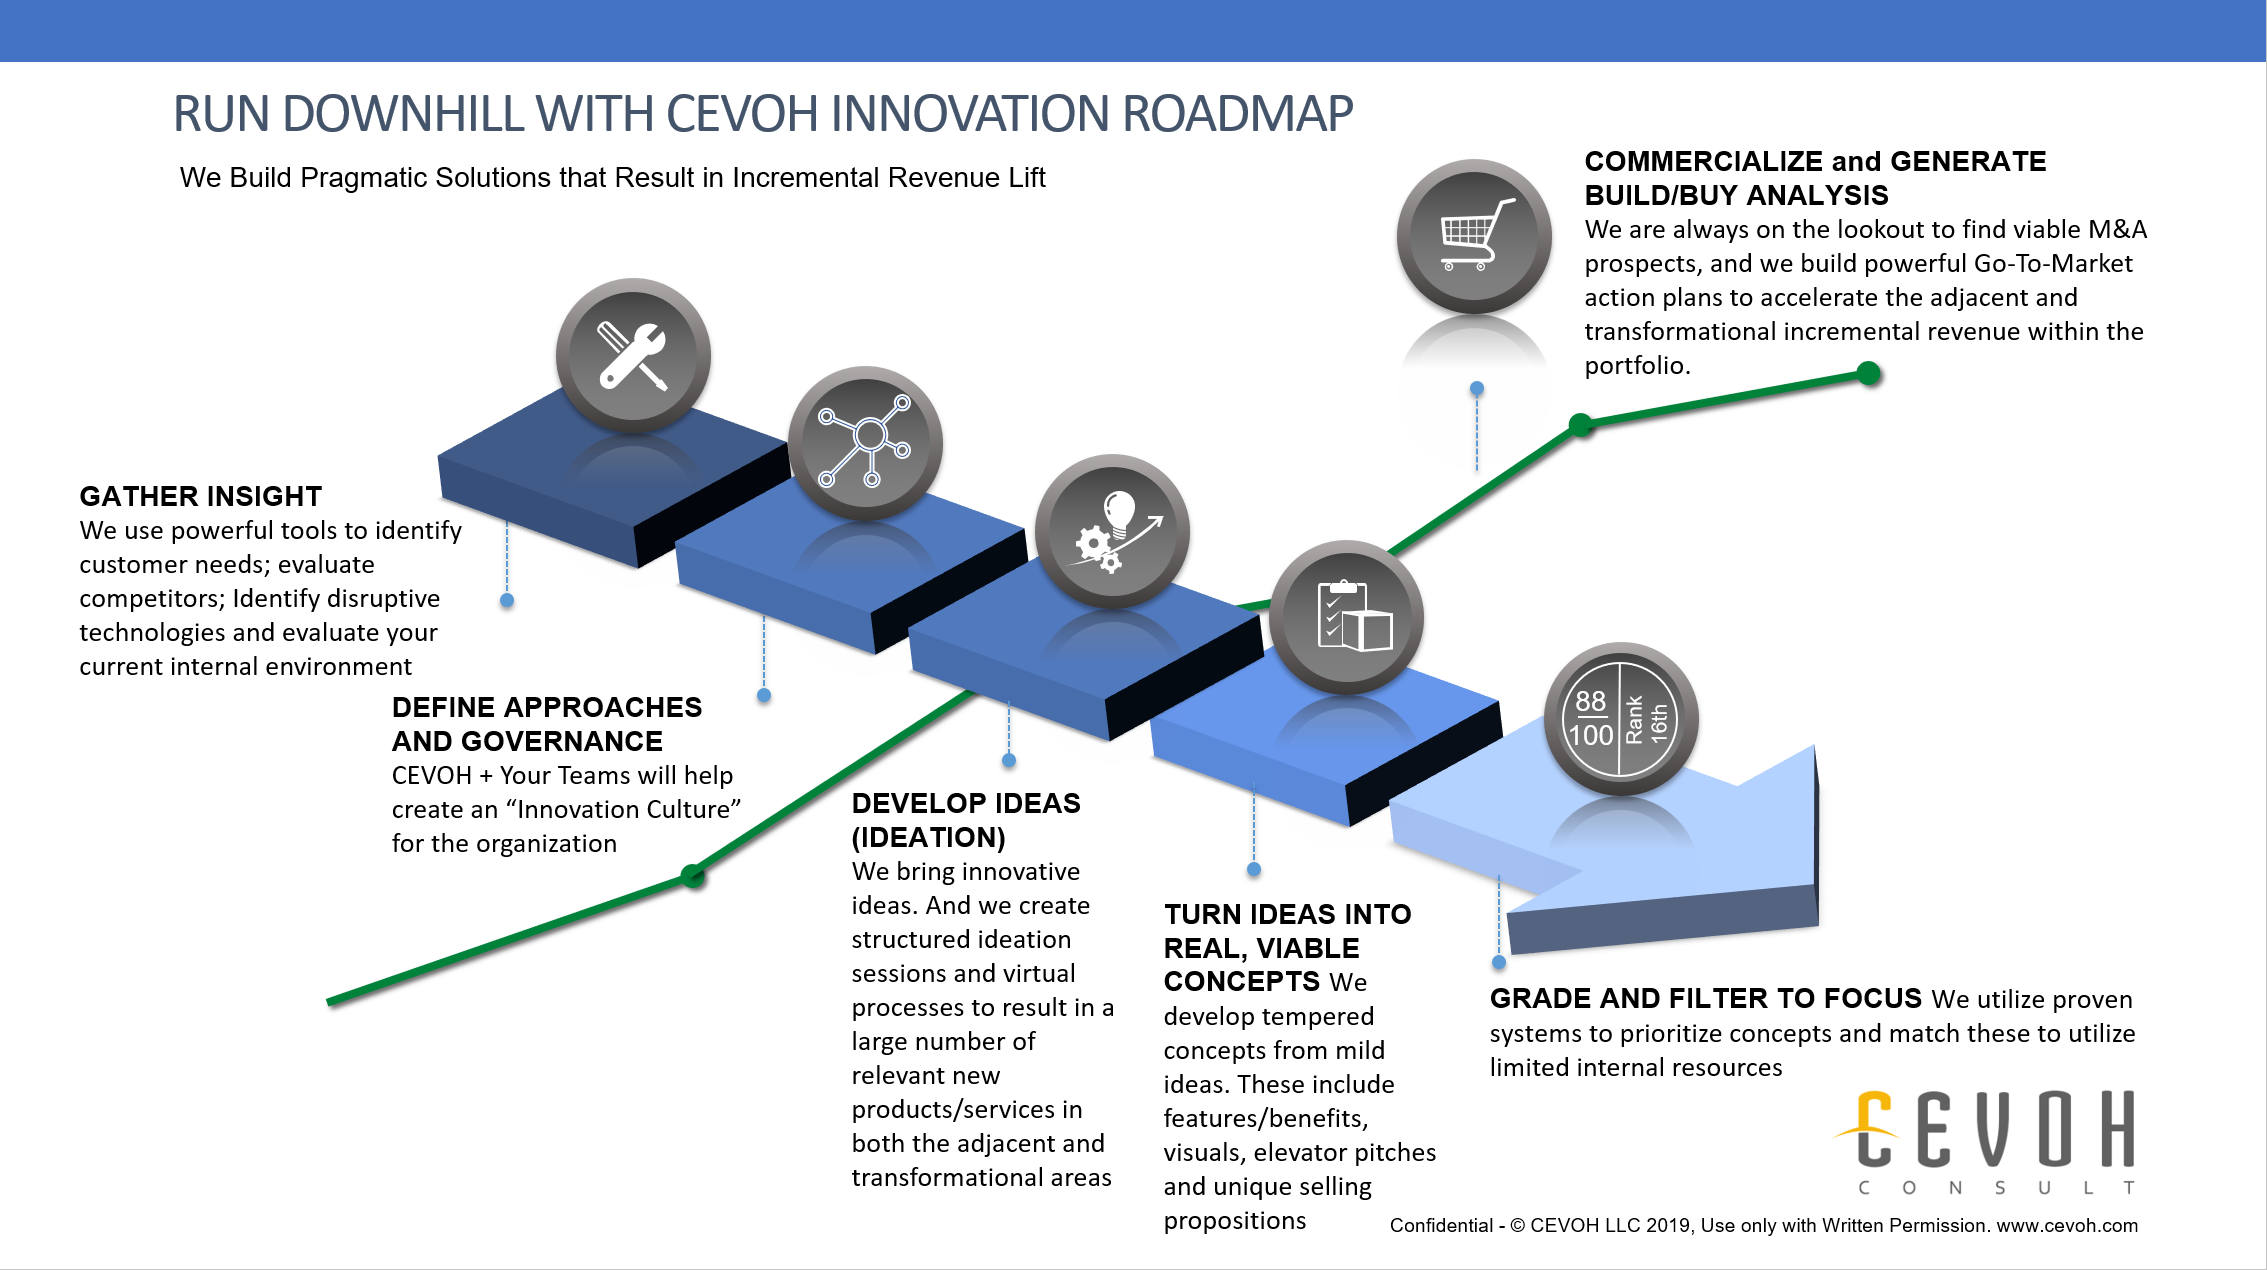 """Our roadmap is the key to speed. Most companies we work with are highly motivated to """"make numbers"""". We developed the roadmap featured here to help expedite incremental revenue from innovation. You could try to do all this yourself - and would likely achieve some lift, but we have seasoned experts that help you avoid the pitfalls, move more quickly and get the right concepts to market. Engaging CEVOH is not expensive, and it is going to have a significant ROI."""